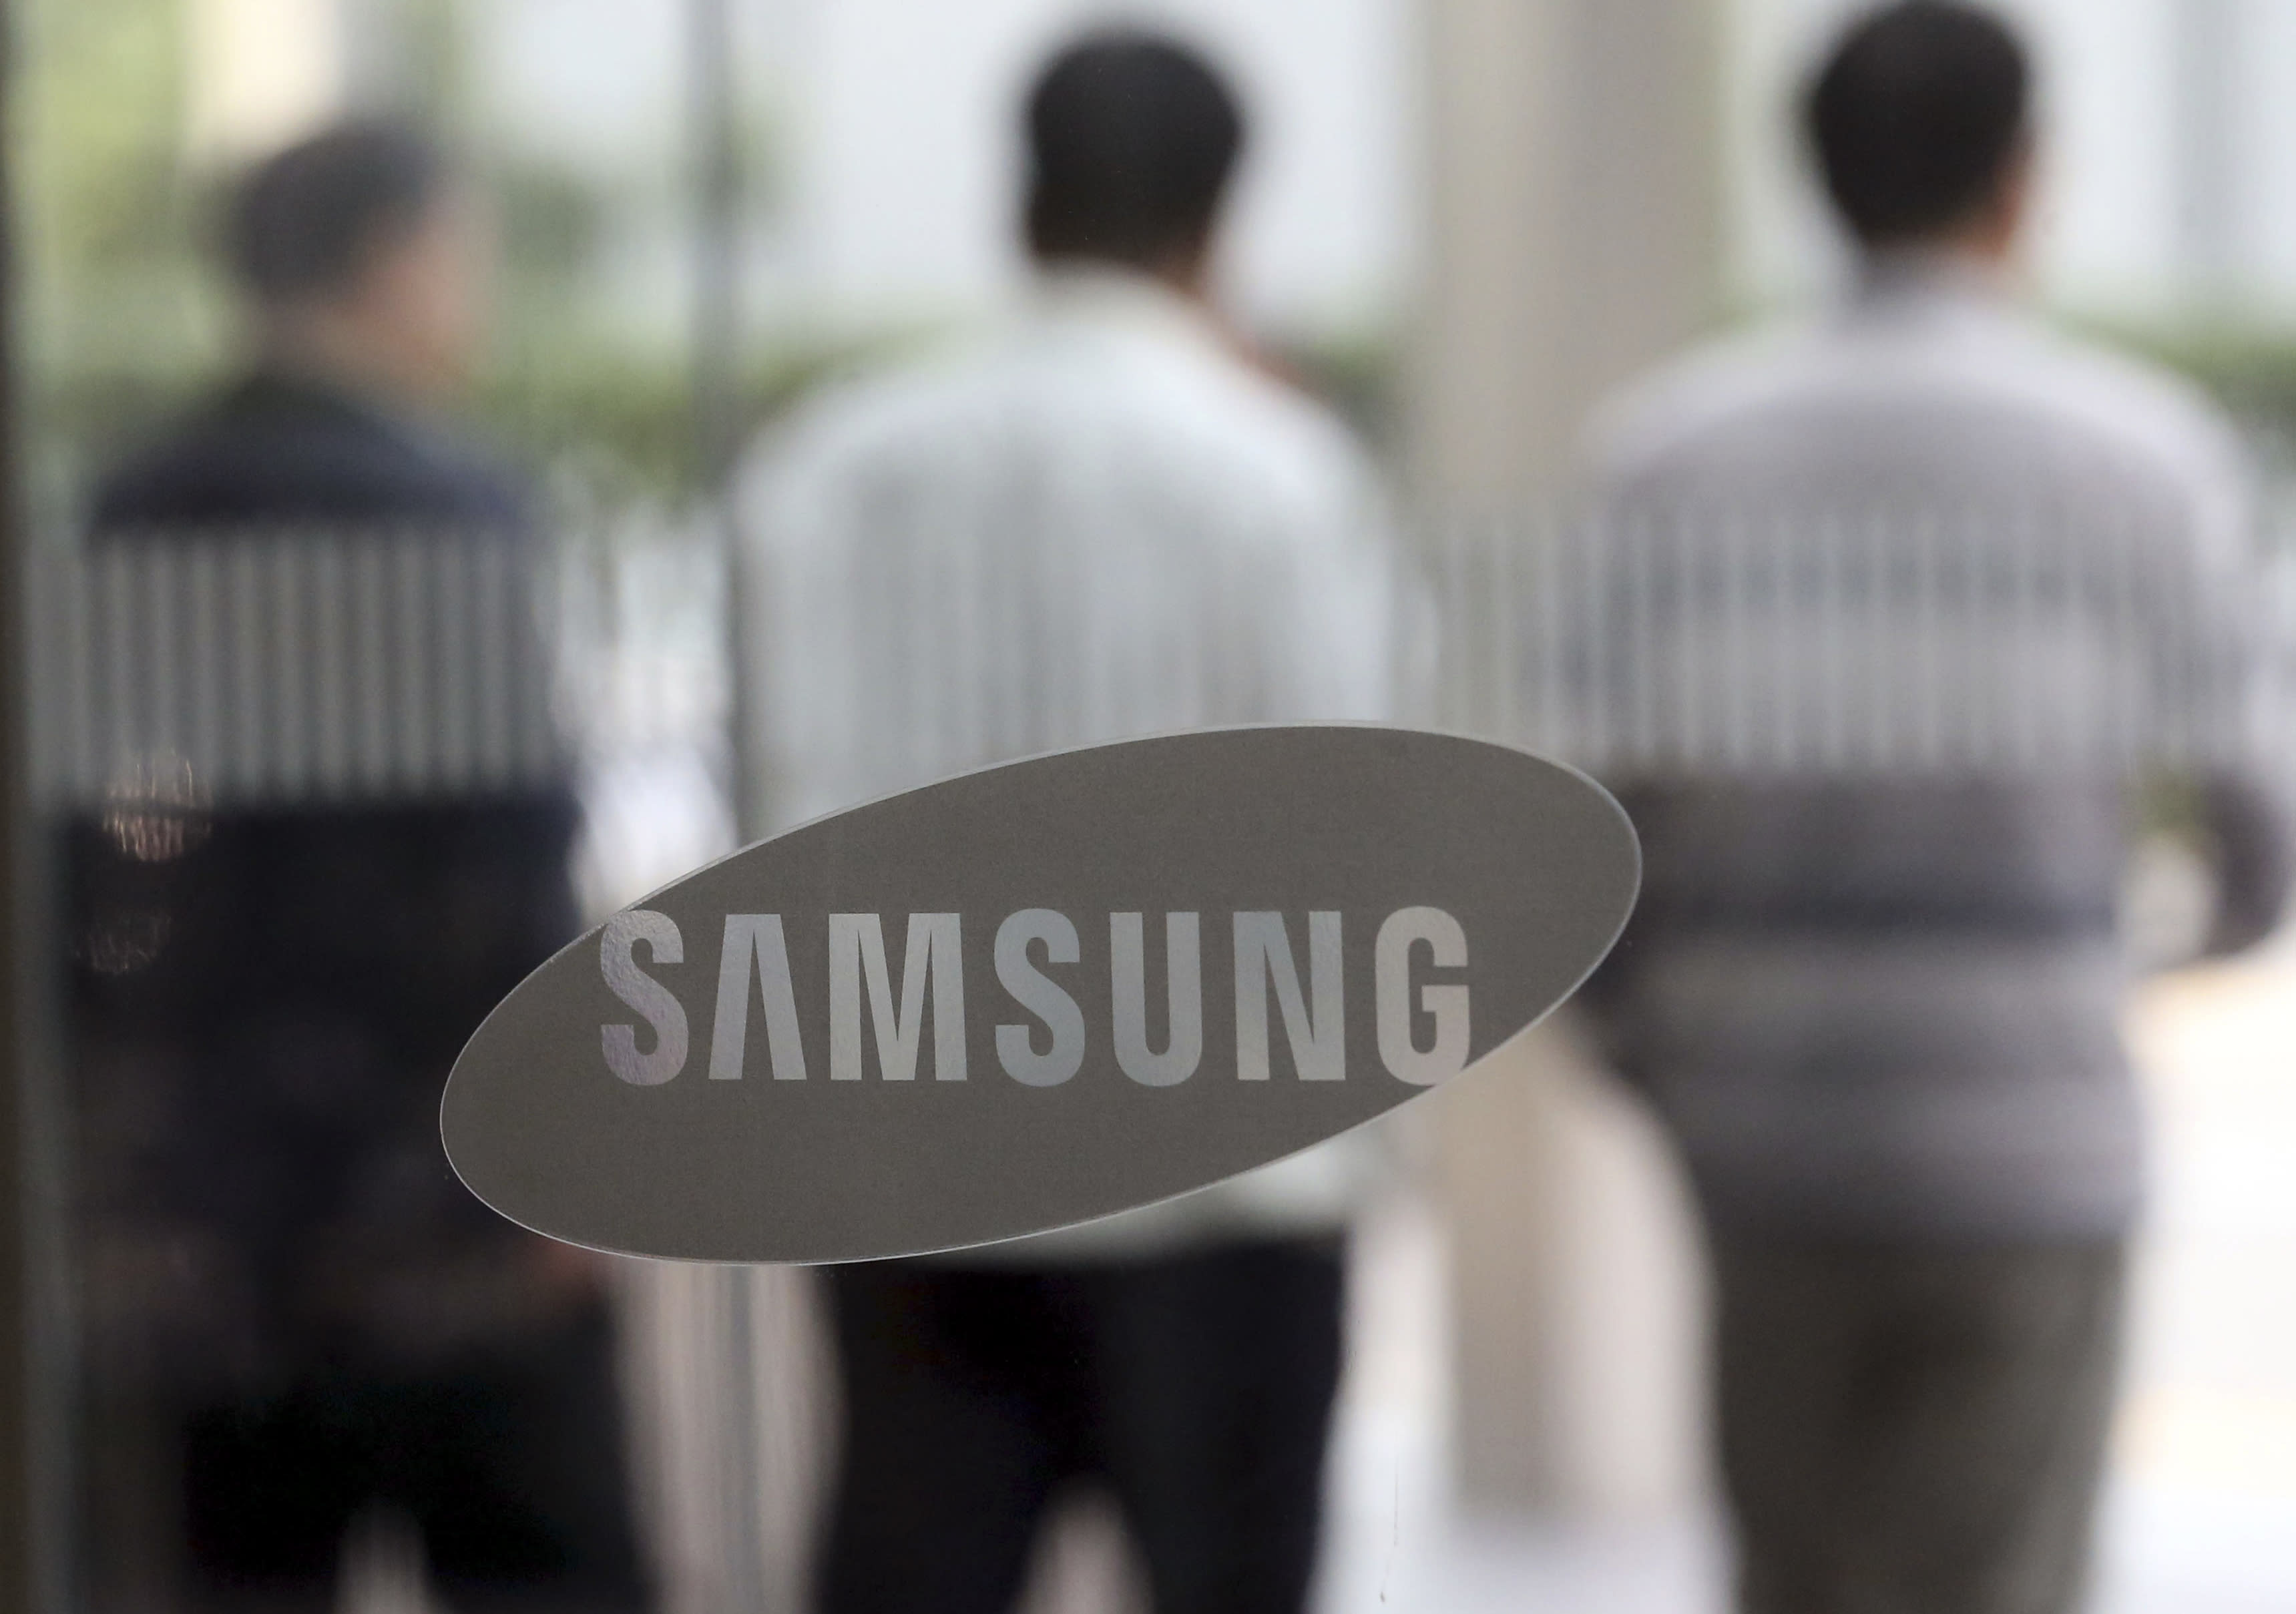 Samsung 3Q operating profit surges, shares jump 9 percent